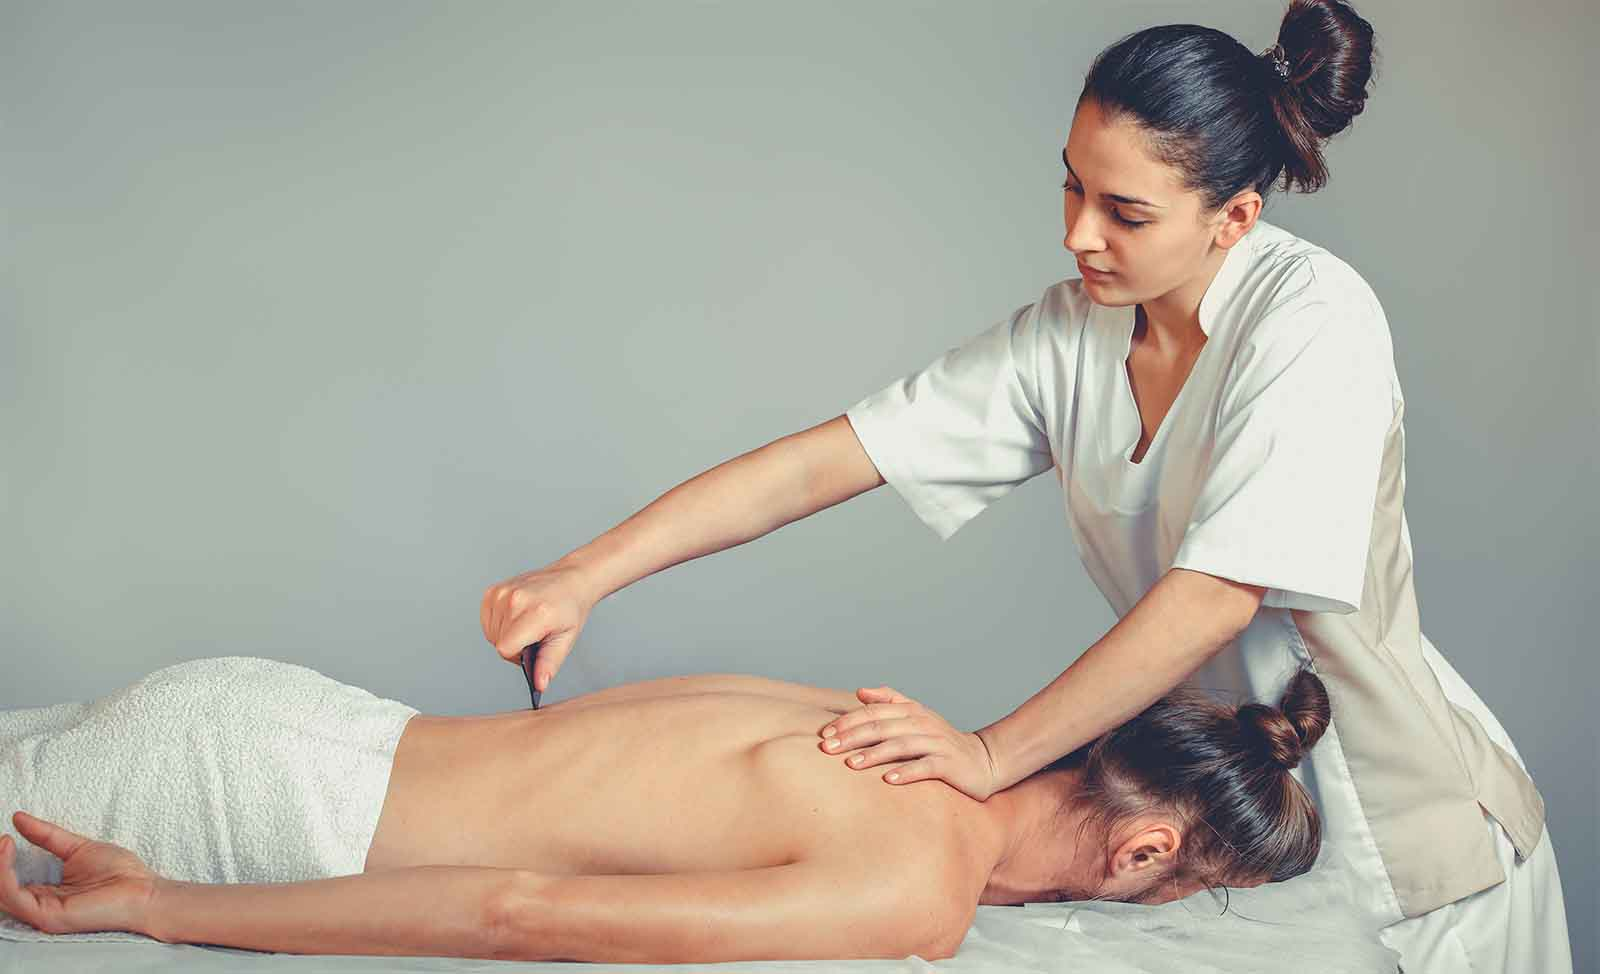 ajax massage therapy in ajax